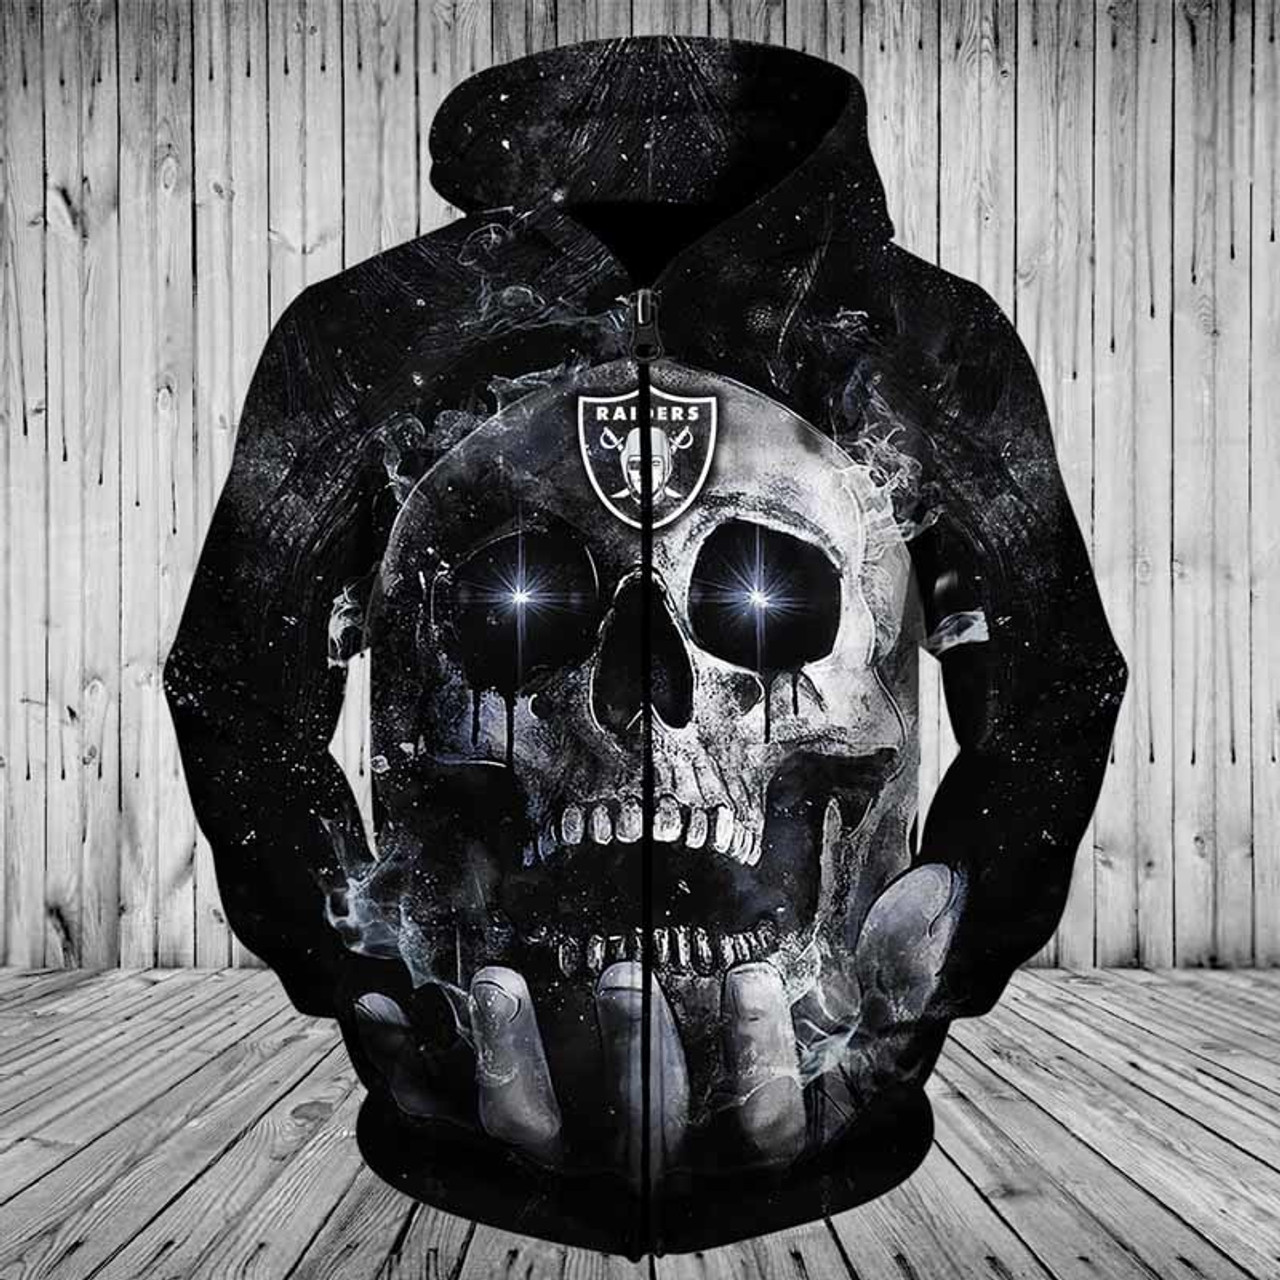 **(OFFICIAL-N.F.L.NEW-OAKLAND-RAIDERS-TEAM-ZIPPERED-NEON-SKULL-HOODIES/CUSTOM-3D-NEON-GRAPHIC-PRINTED-DOUBLE-SIDED-ALL-OVER-OFFICIAL-RAIDERS-LOGOS & IN-RAIDERS-TEAM-COLORS/WARM-PREMIUM-OFFICIAL-N.F.L.RAIDERS-TEAM-FRONT-ZIP-UP-POCKET-HOODIES)**